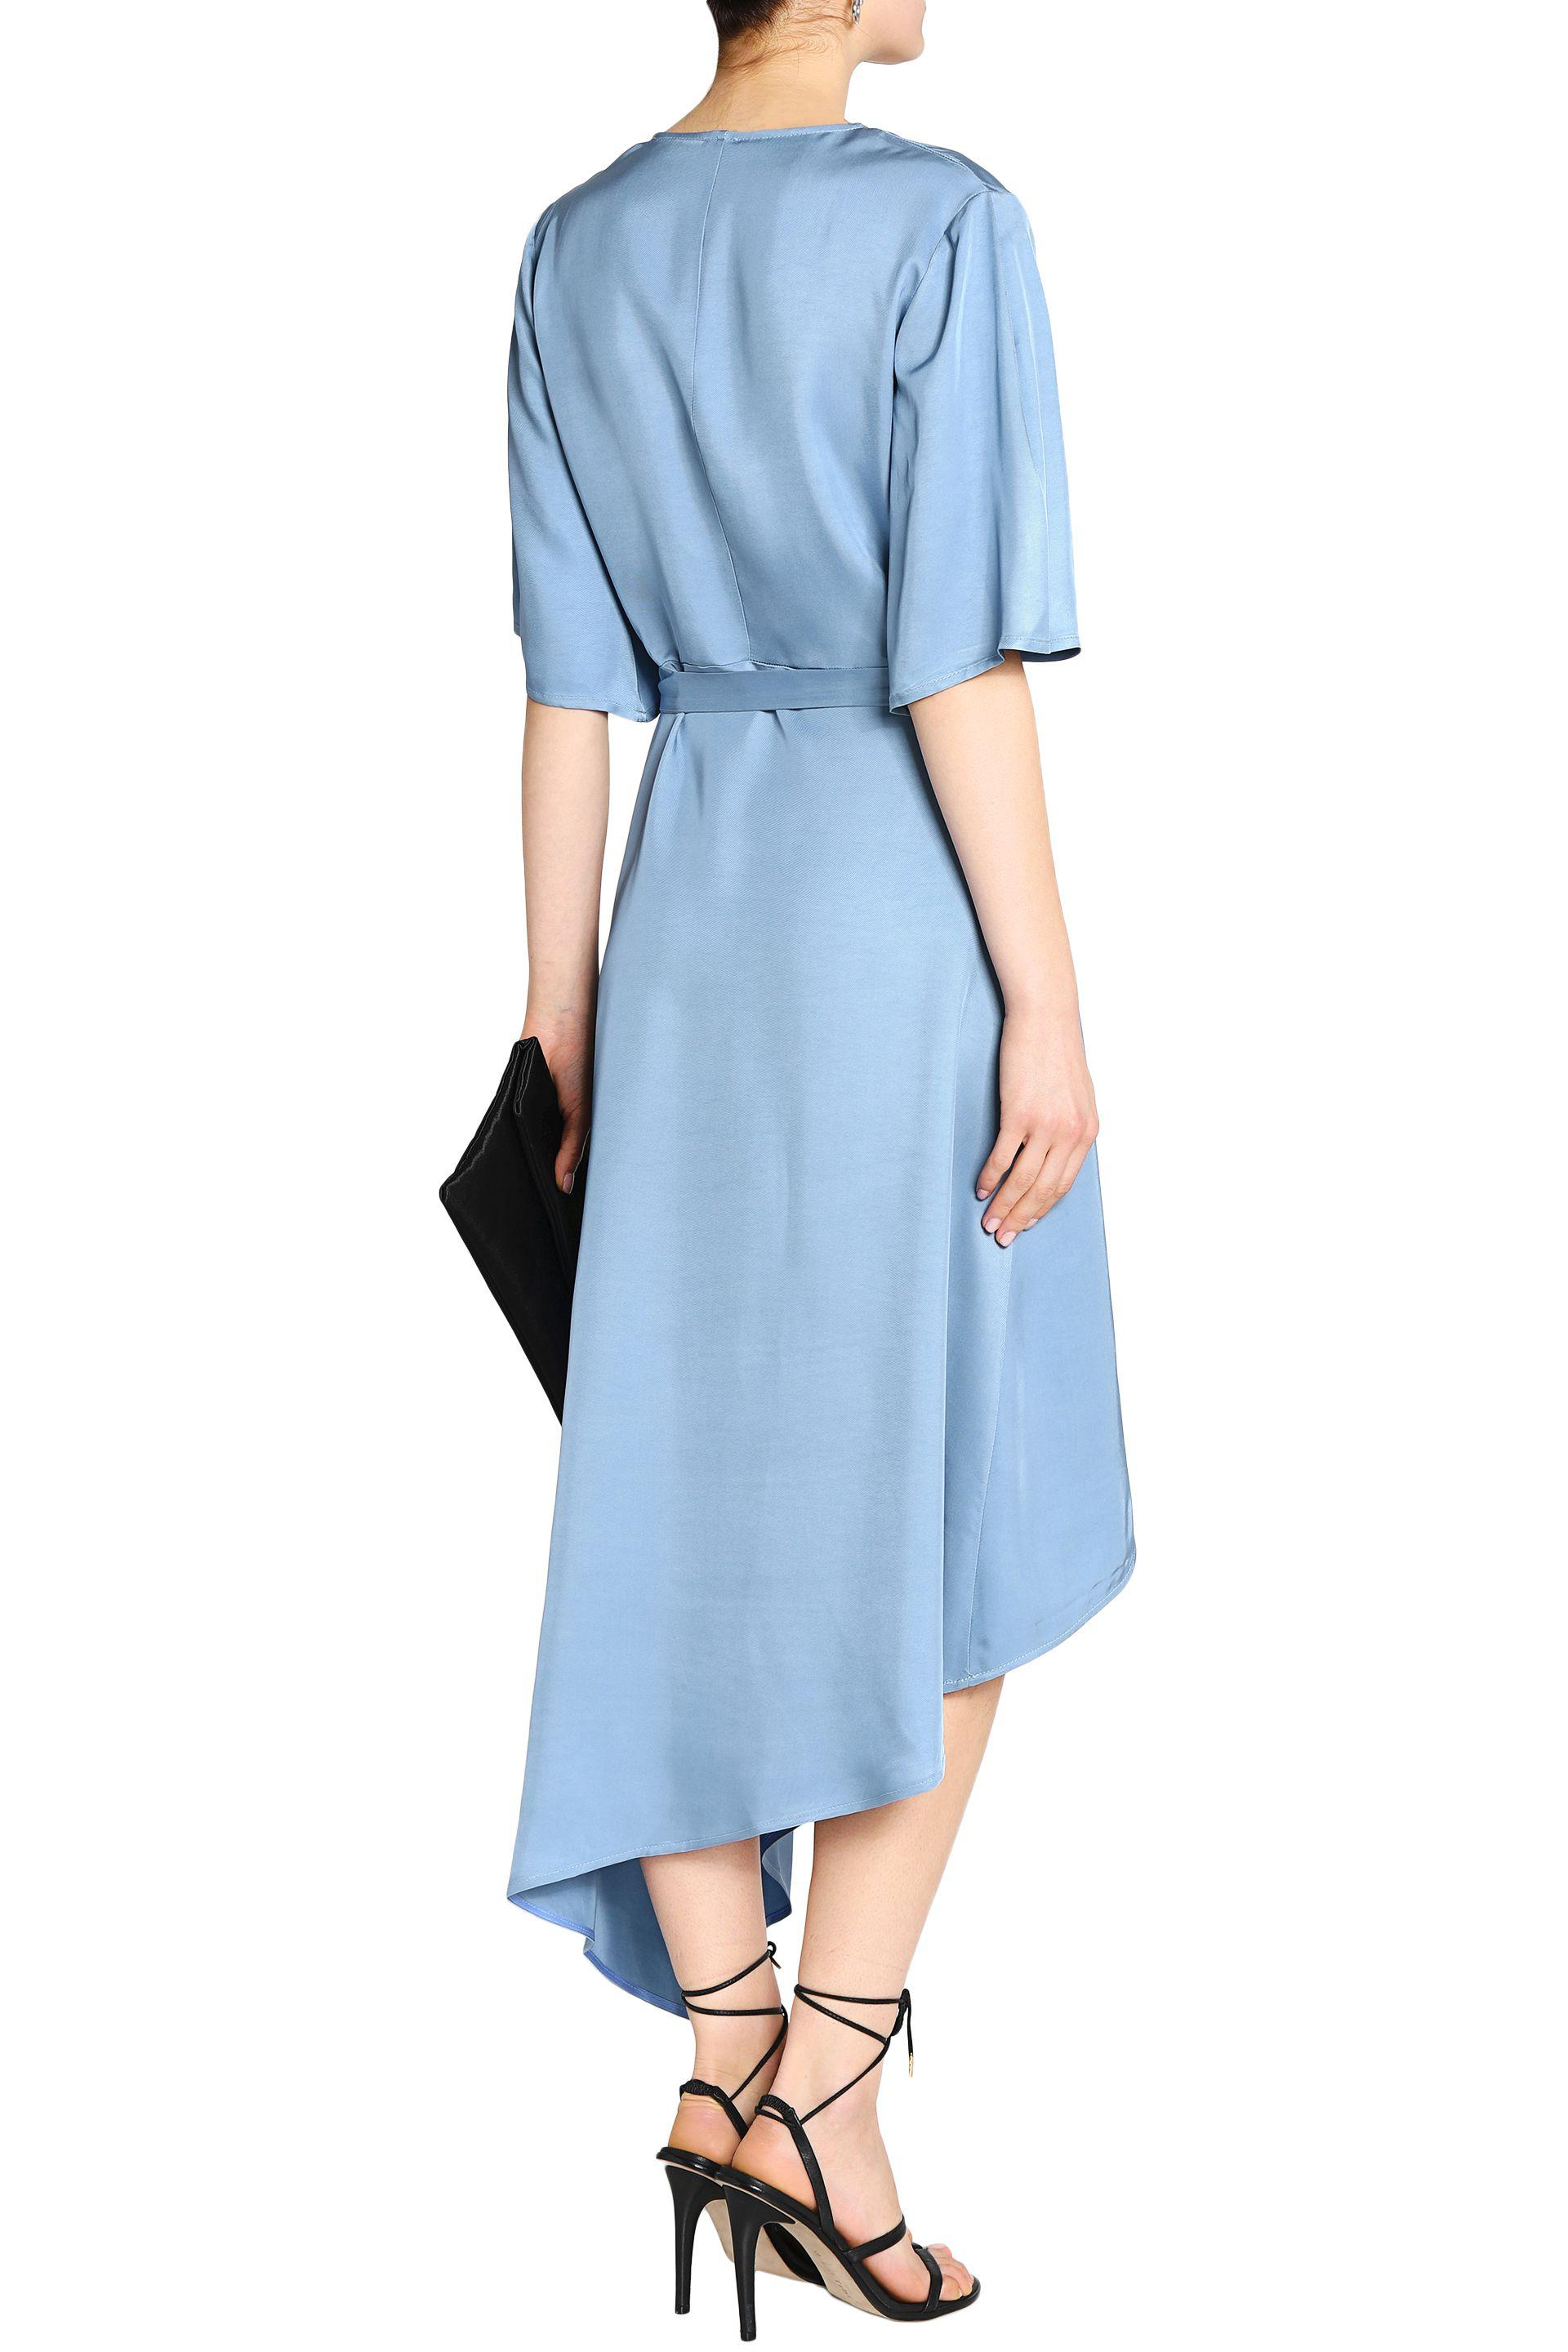 Iris & Ink Woman Noel Asymmetric Satin-twill Midi Wrap Dress Light Blue Size 14 IRIS & INK BvoCs5I